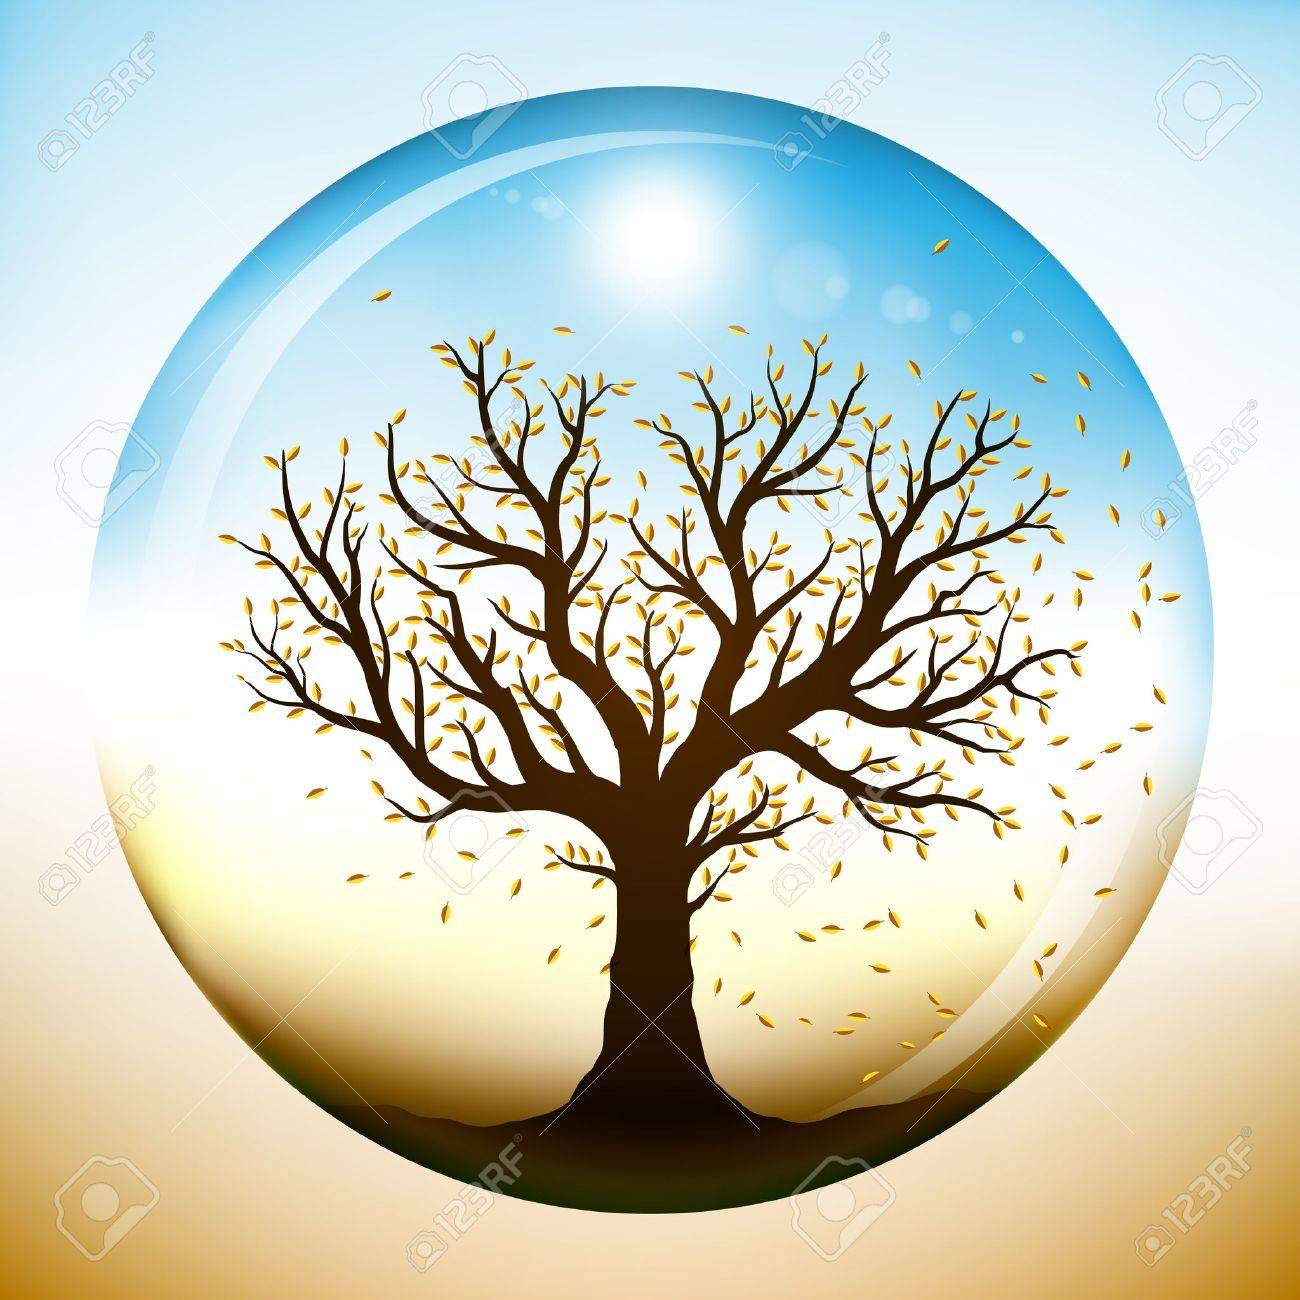 Autumn tree with falling yellow leaves, closed inside a glass sphere Stock Vector - 11299248